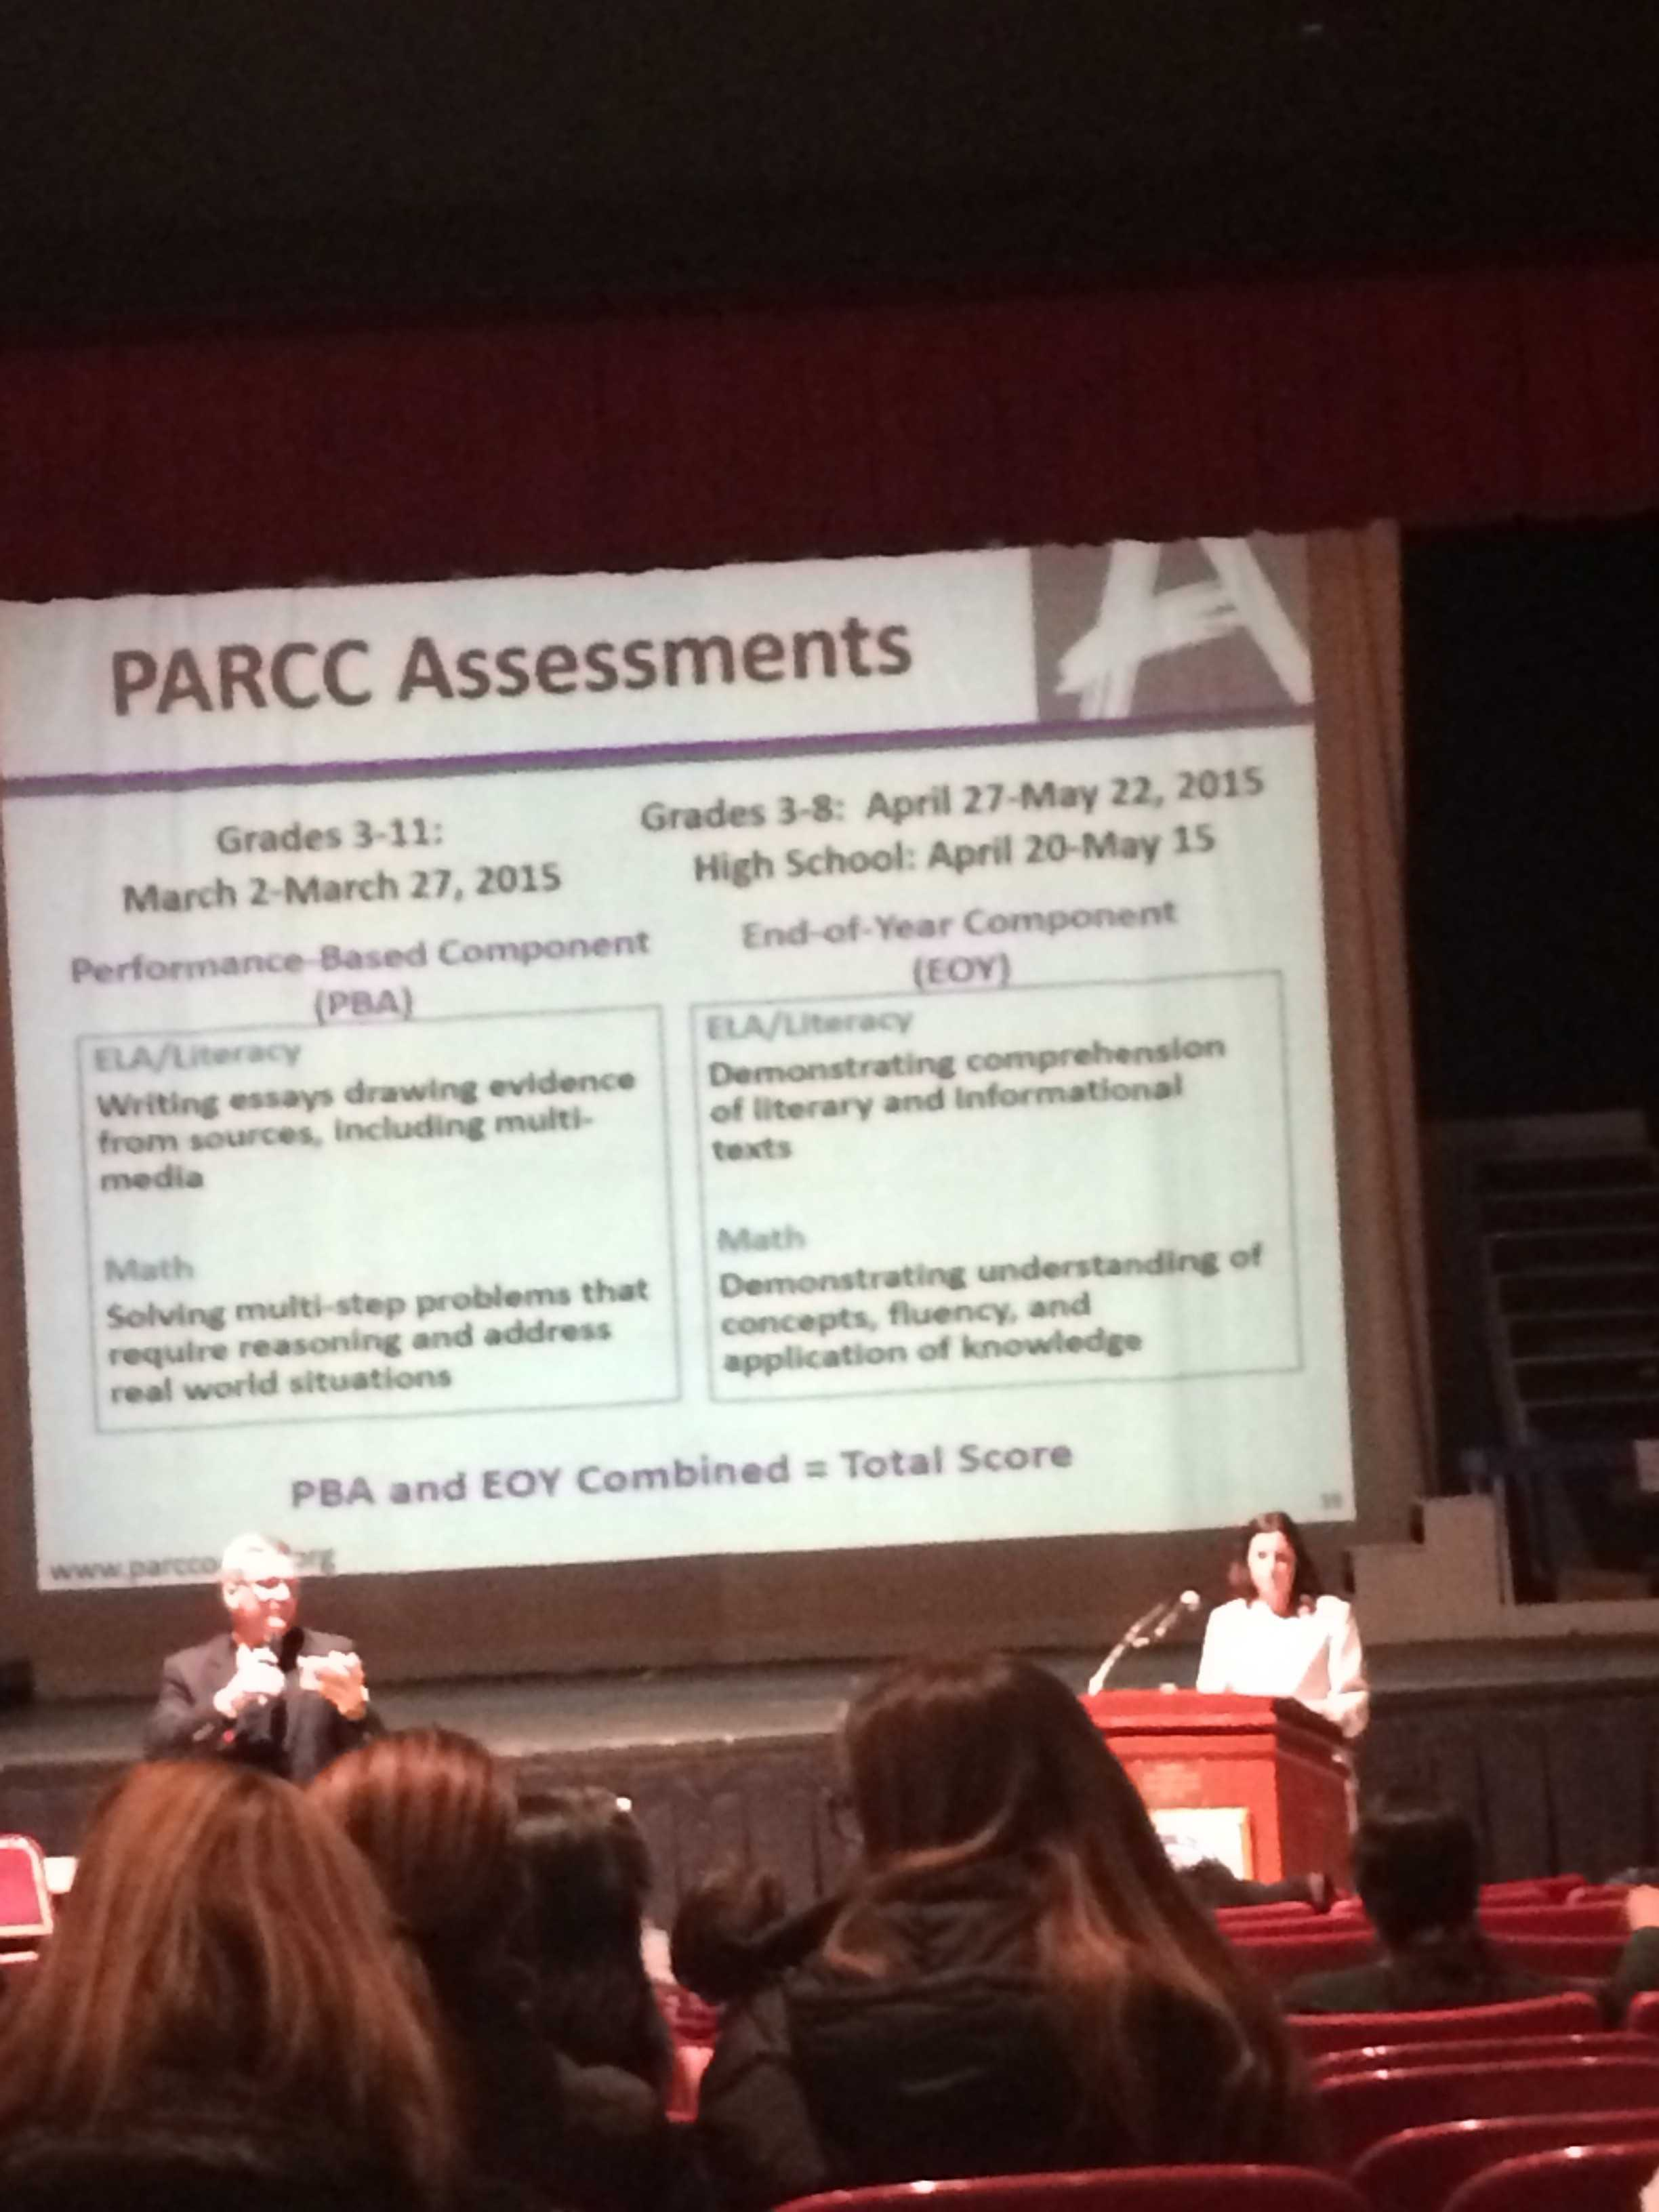 A preview of some basic content for the PARCC test that was shown at a public meeting at Cherry Hill East.